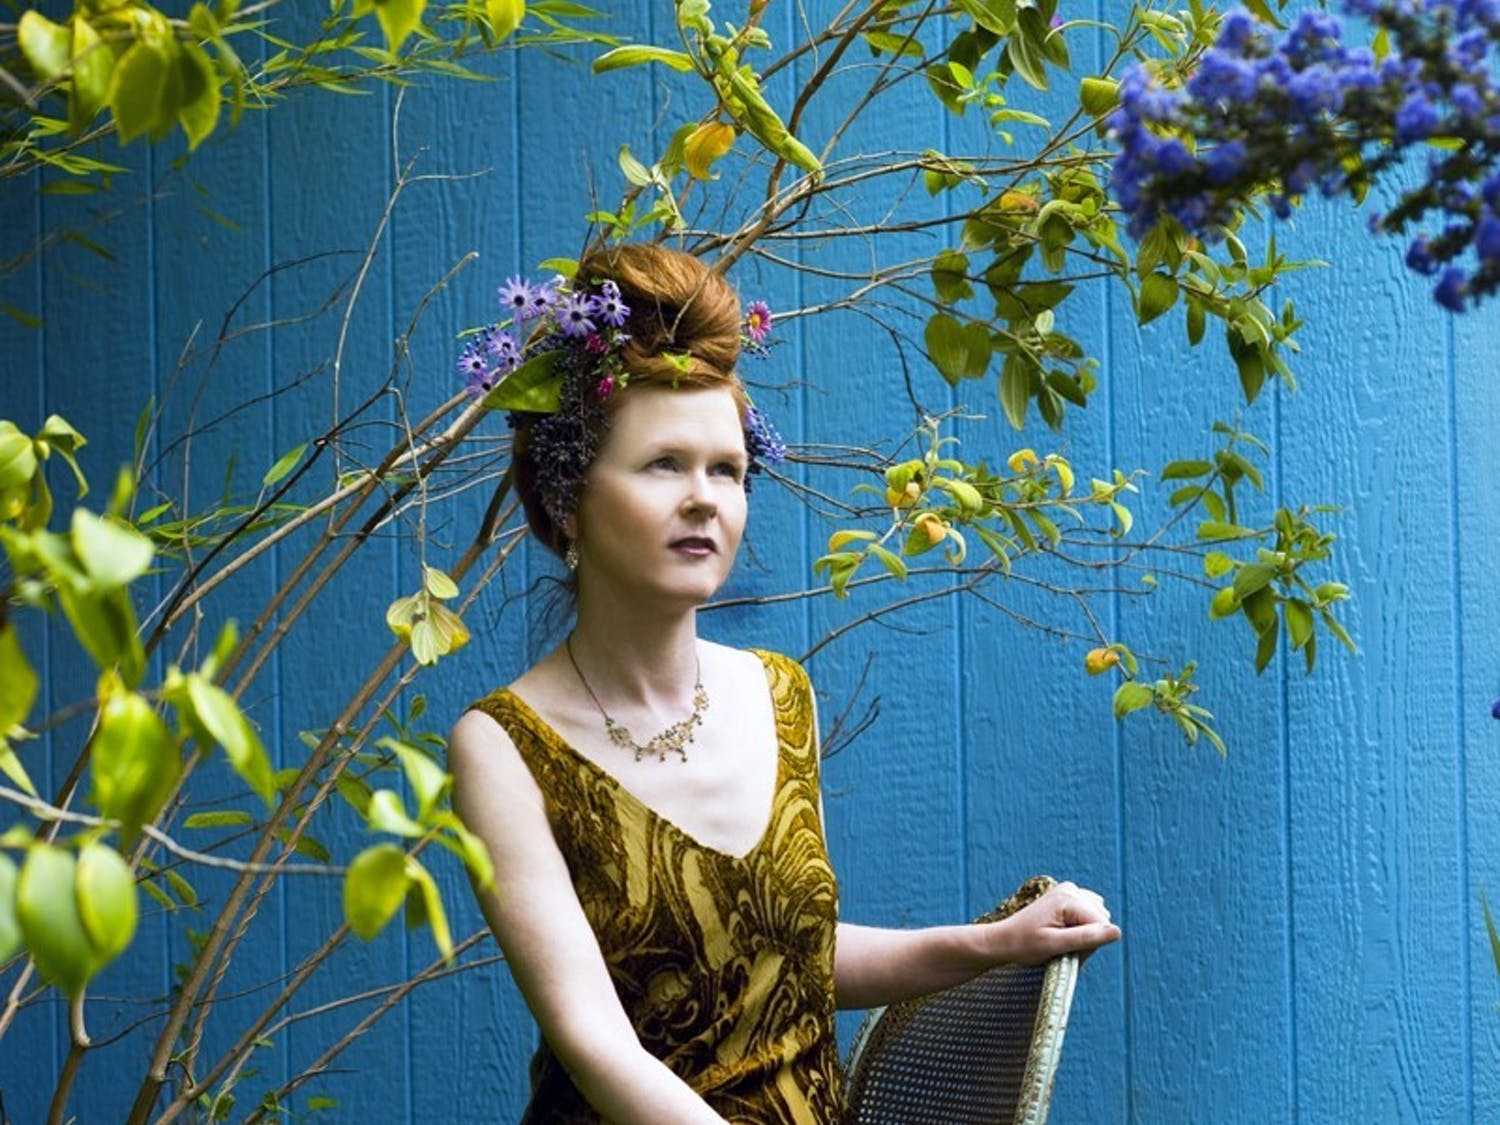 """Sarah Cahill will perform her latest piano project, """"The Future Is Female,"""" at the CURRENT ArtSpace + Studio on Nov. 16, 2019. Photo courtesy of Marianne La Rochelle."""